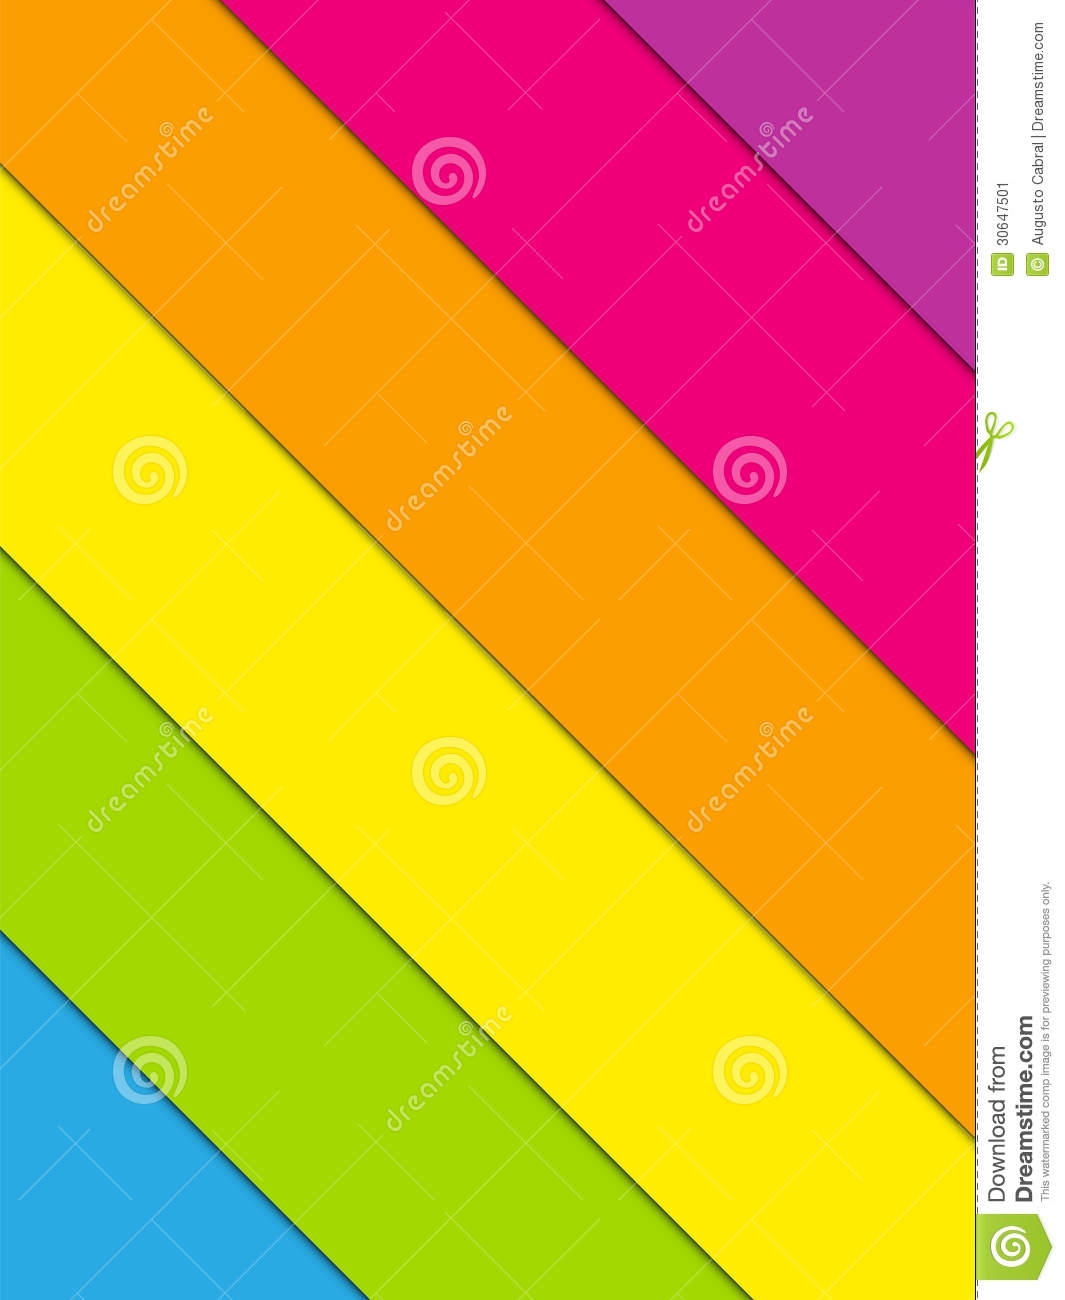 Colorful Lines Background Rainbow Stock Image - Image: 30647501